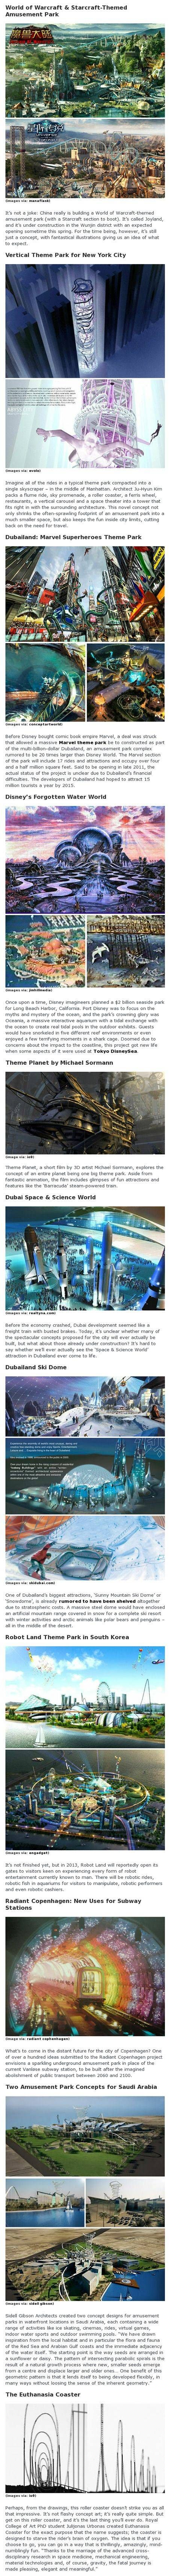 Here are some futuristic theme park concepts and rides that are out of this world.